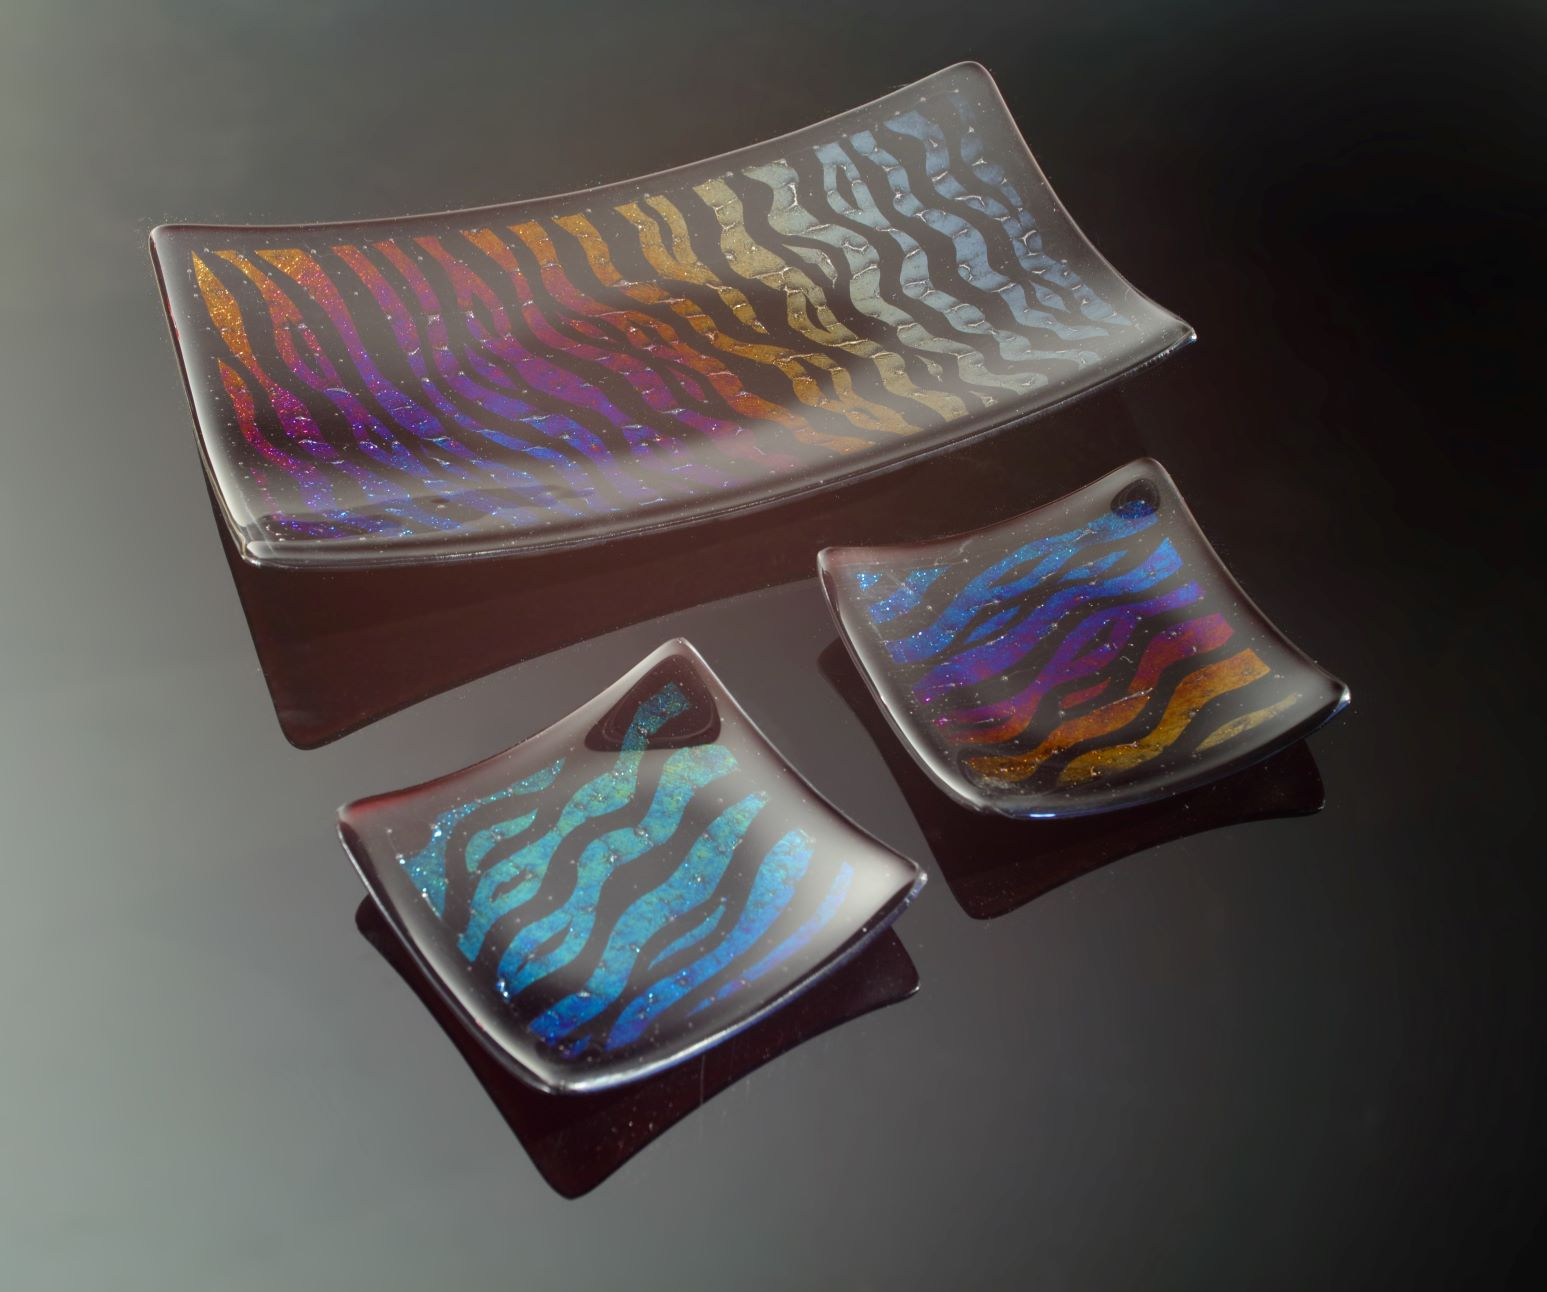 fused glass canape platter and serving dishes inspired by the Atlas Mountains in Morocco. Photo © Simon Bruntnell.